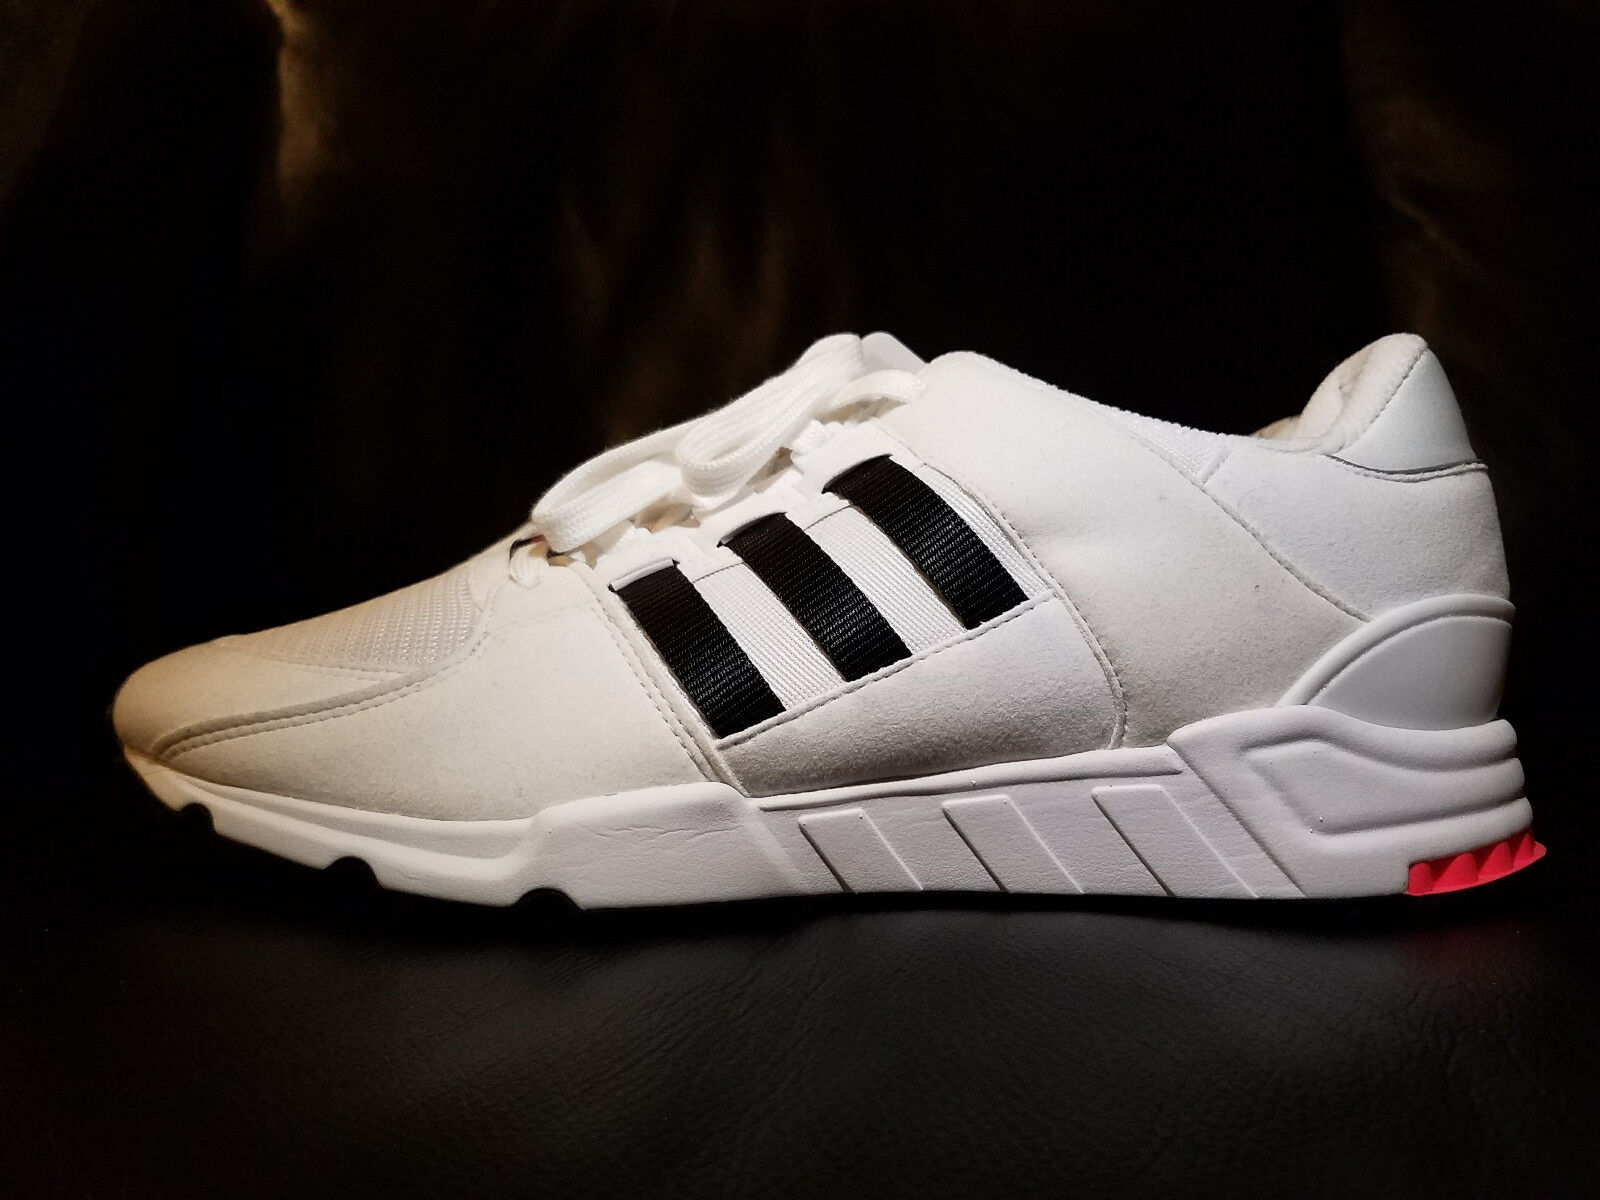 NEW Men's Adidas EQT Support RF BA7715 Adidas Running shoes Sneakers Size 11